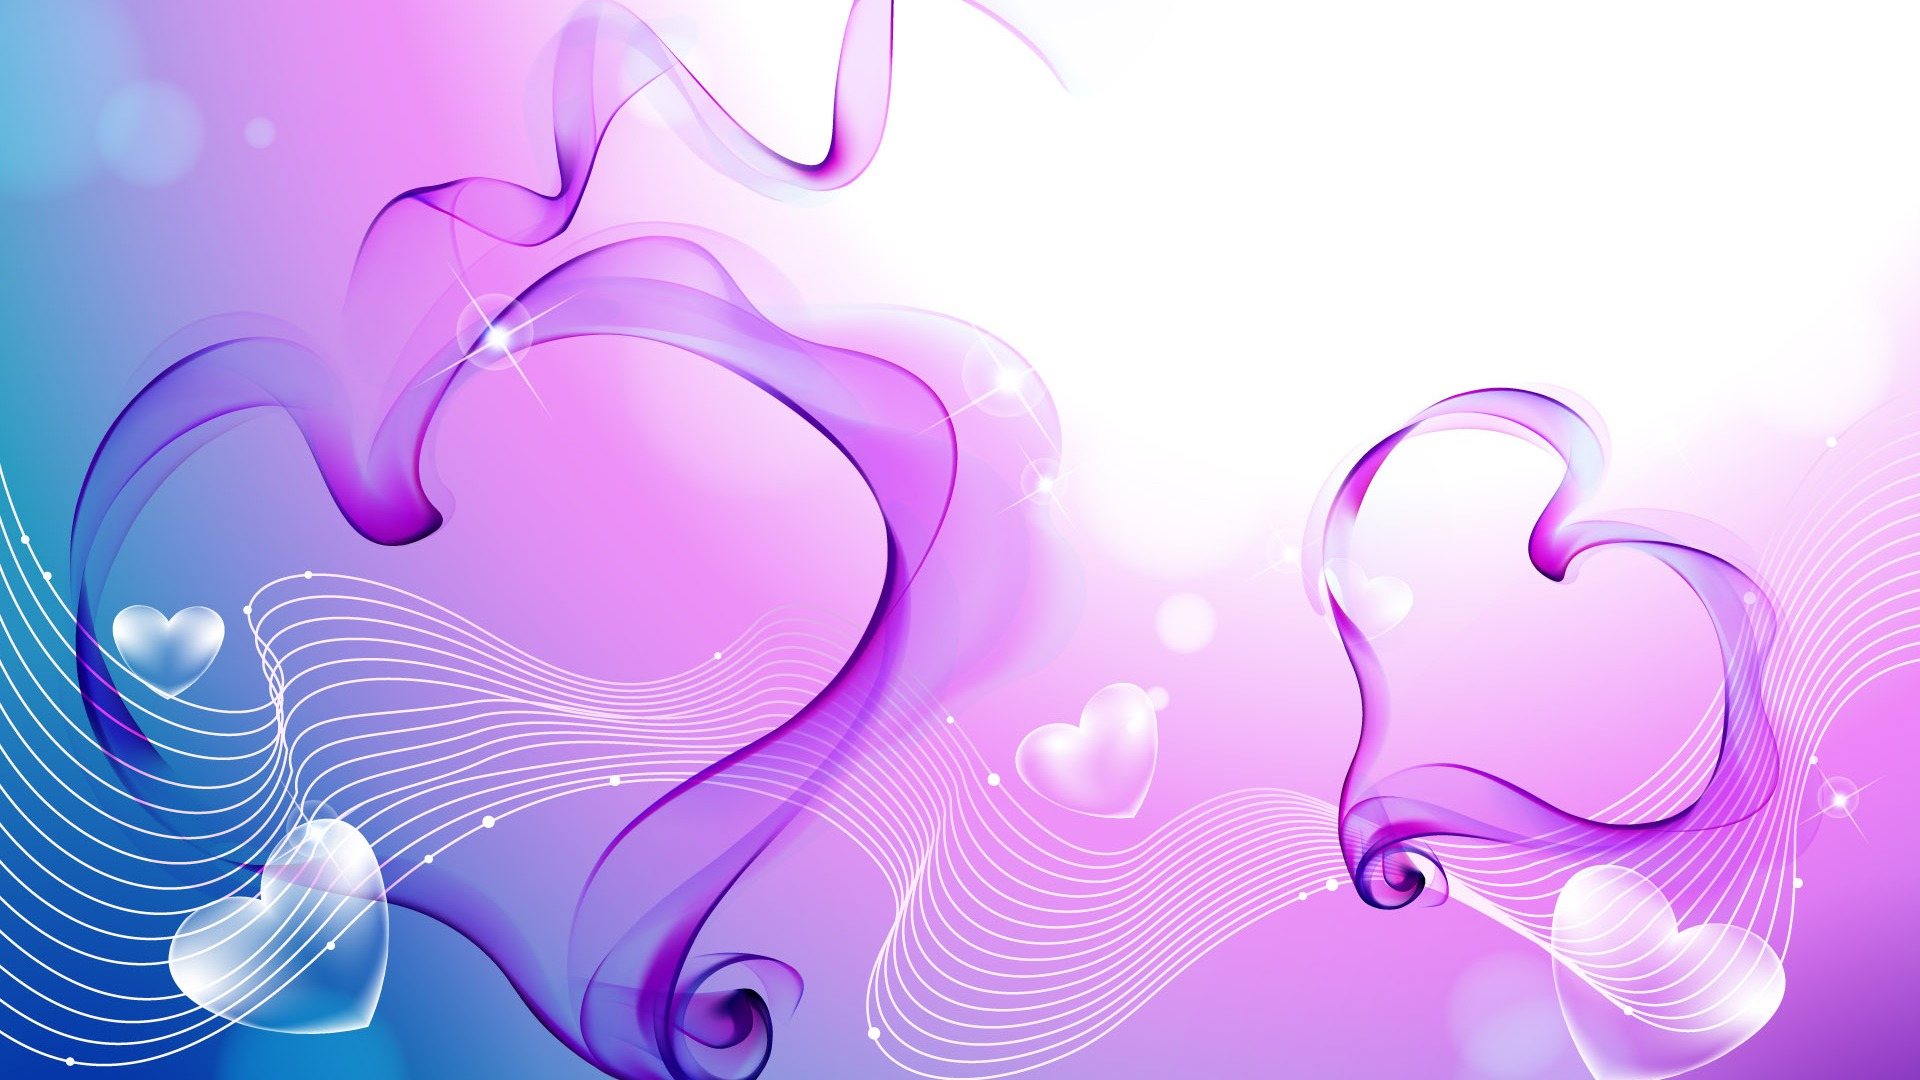 Love Heart Wallpaper Designs : Valentinstag Love Theme Wallpaper (3) #7 - 1920x1080 Wallpaper herunterladen - Valentinstag Love ...